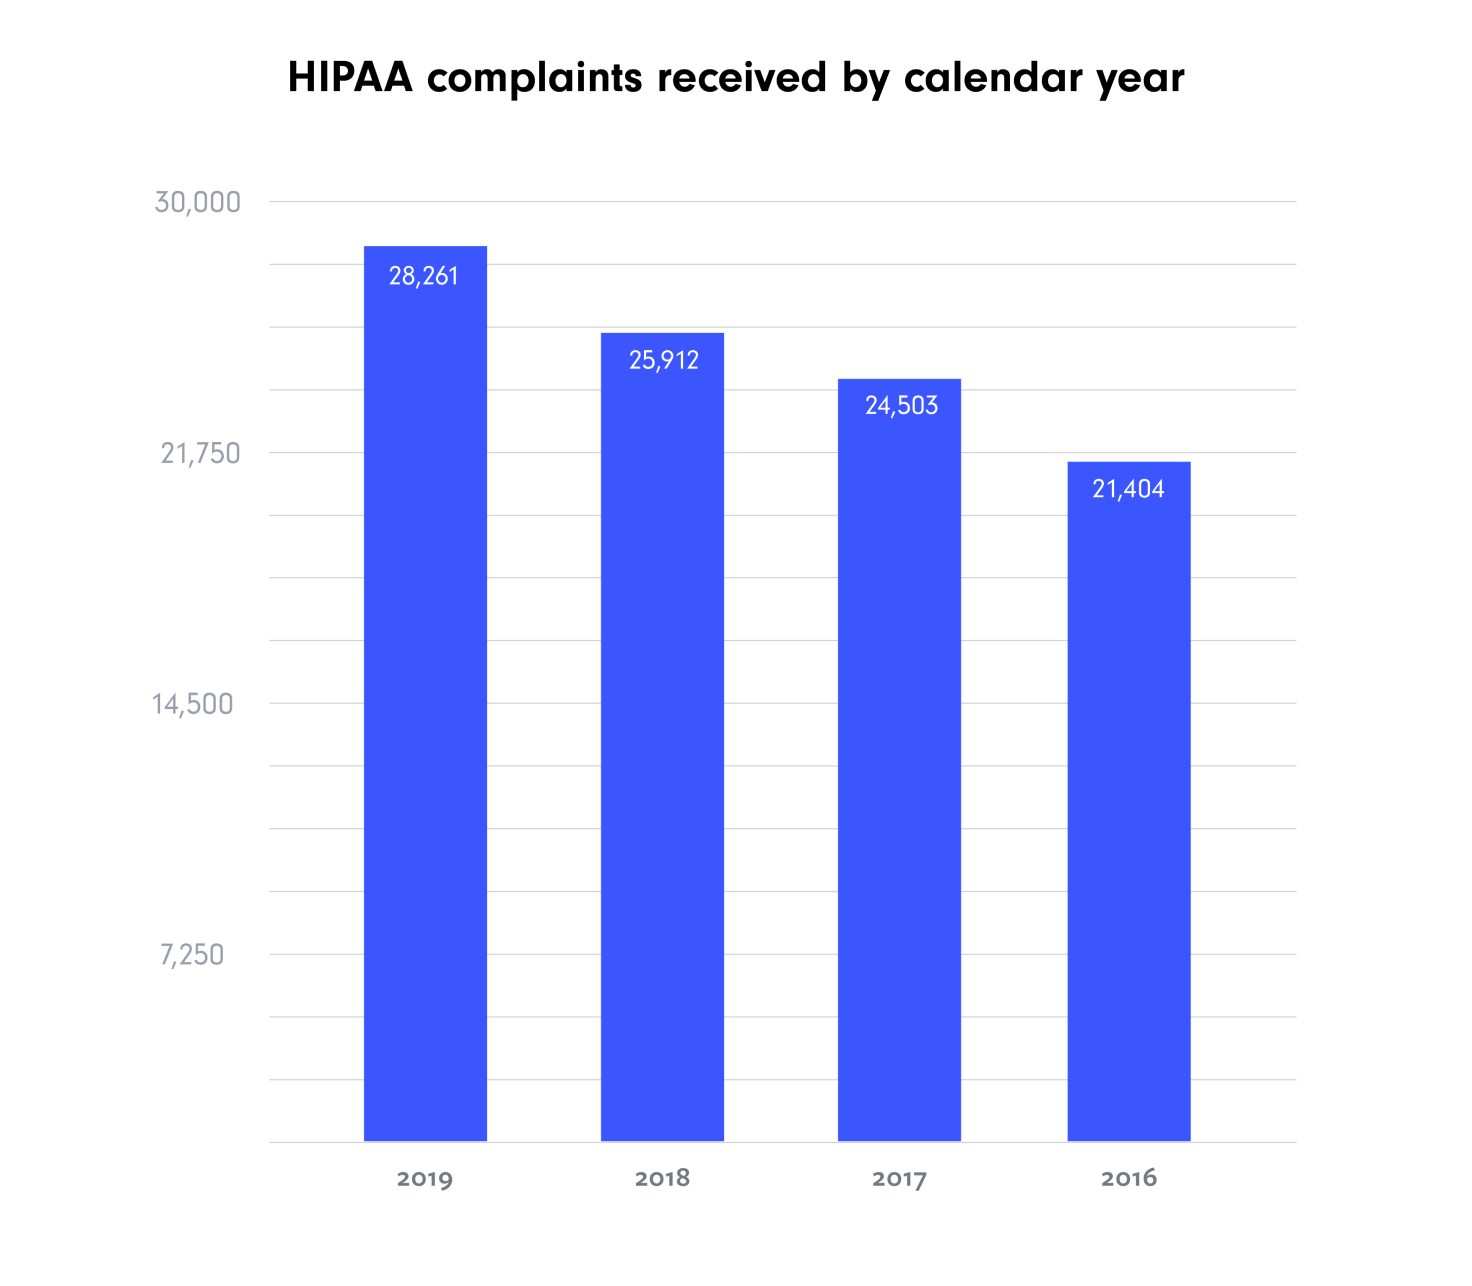 A graph of HIPAA complaints received by calendar year